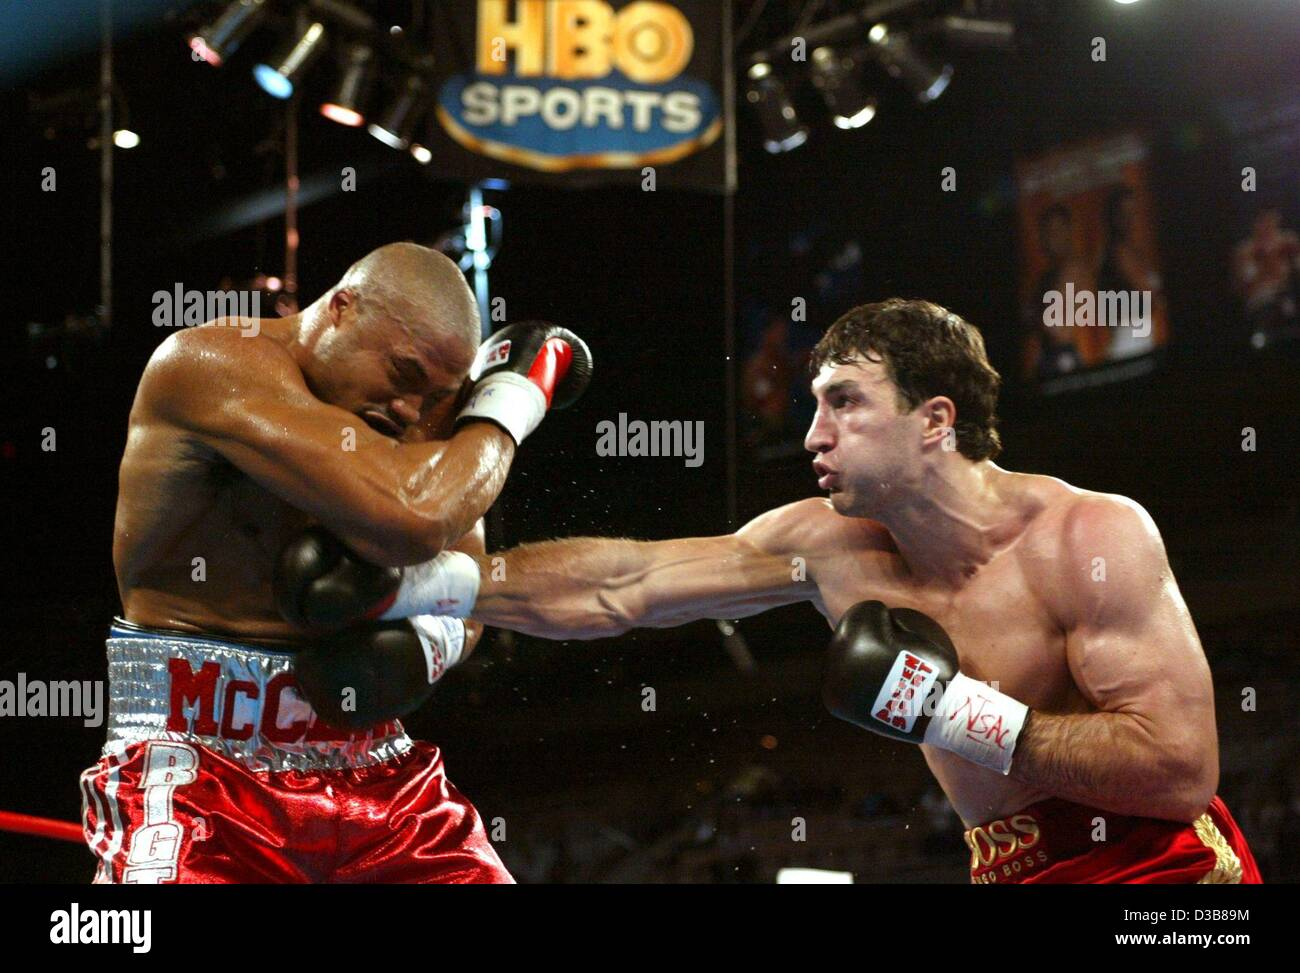 The heavyweight boxer Wladimir Klitschko in action during the WBO title fight vs. the US boxer Jameel McCline on - Stock Image